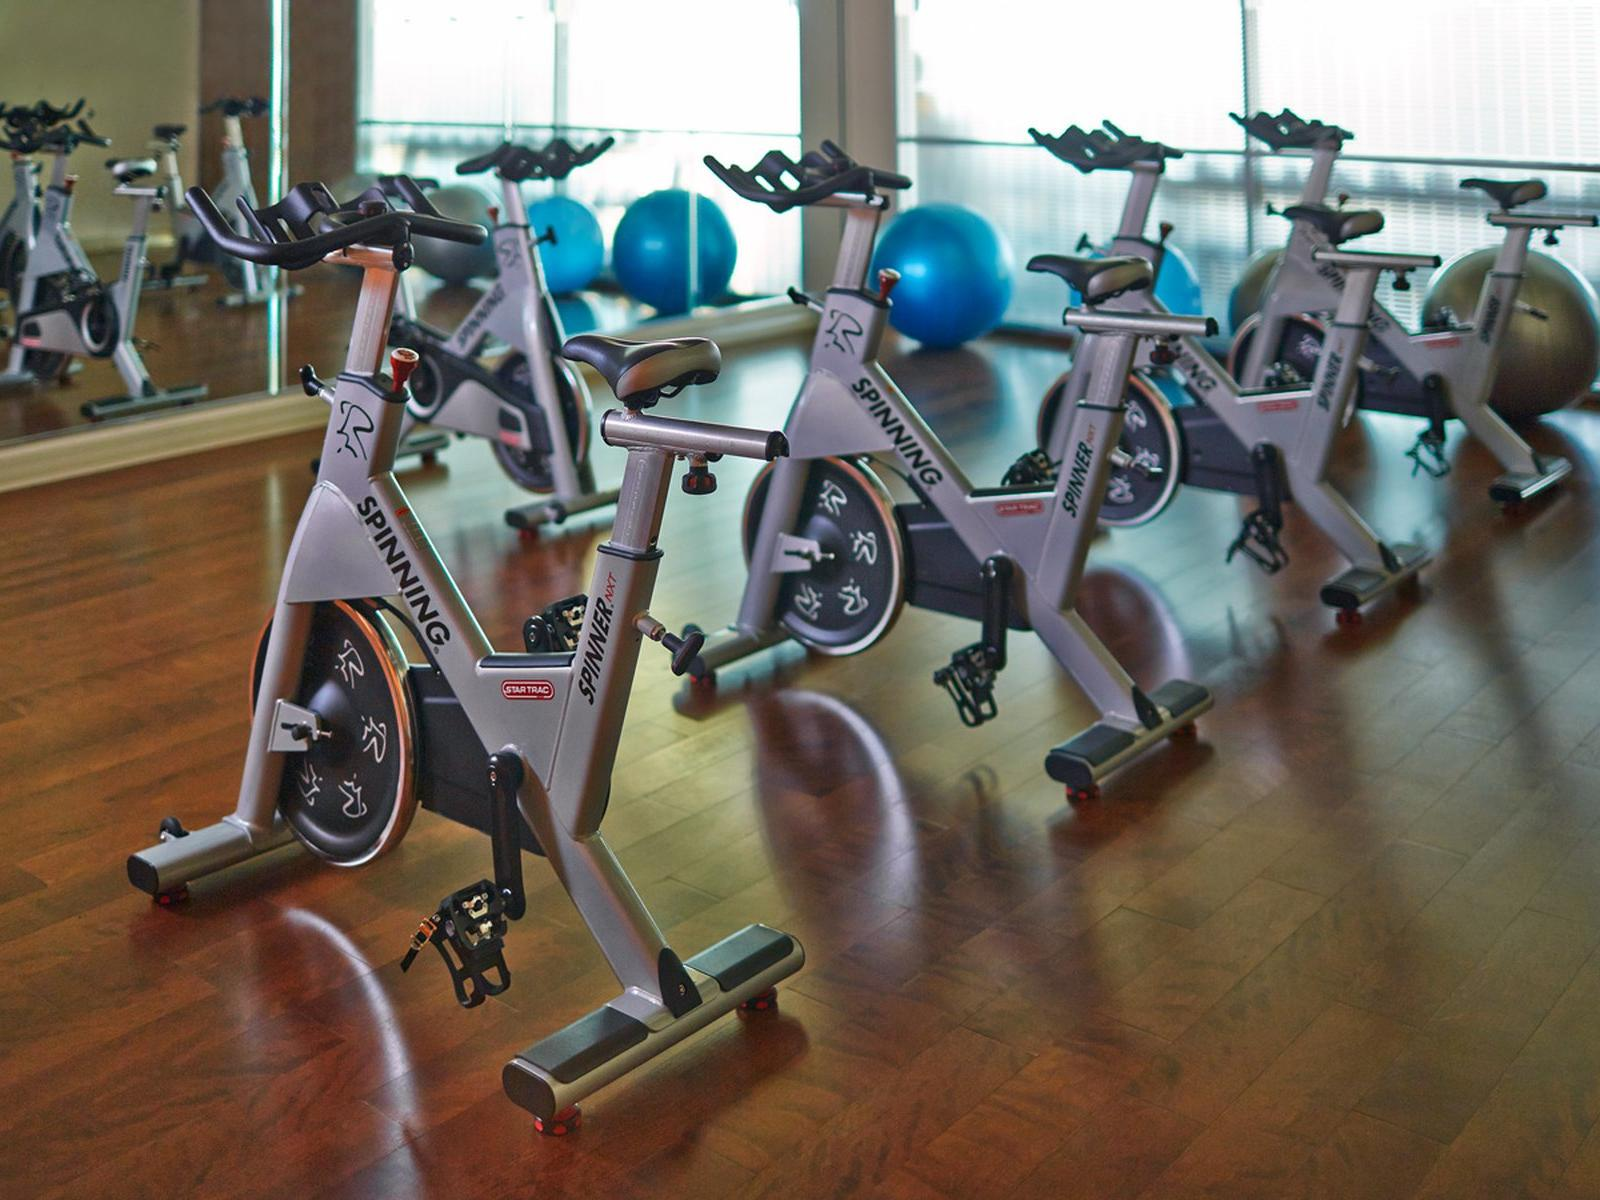 a row of stationary bikes